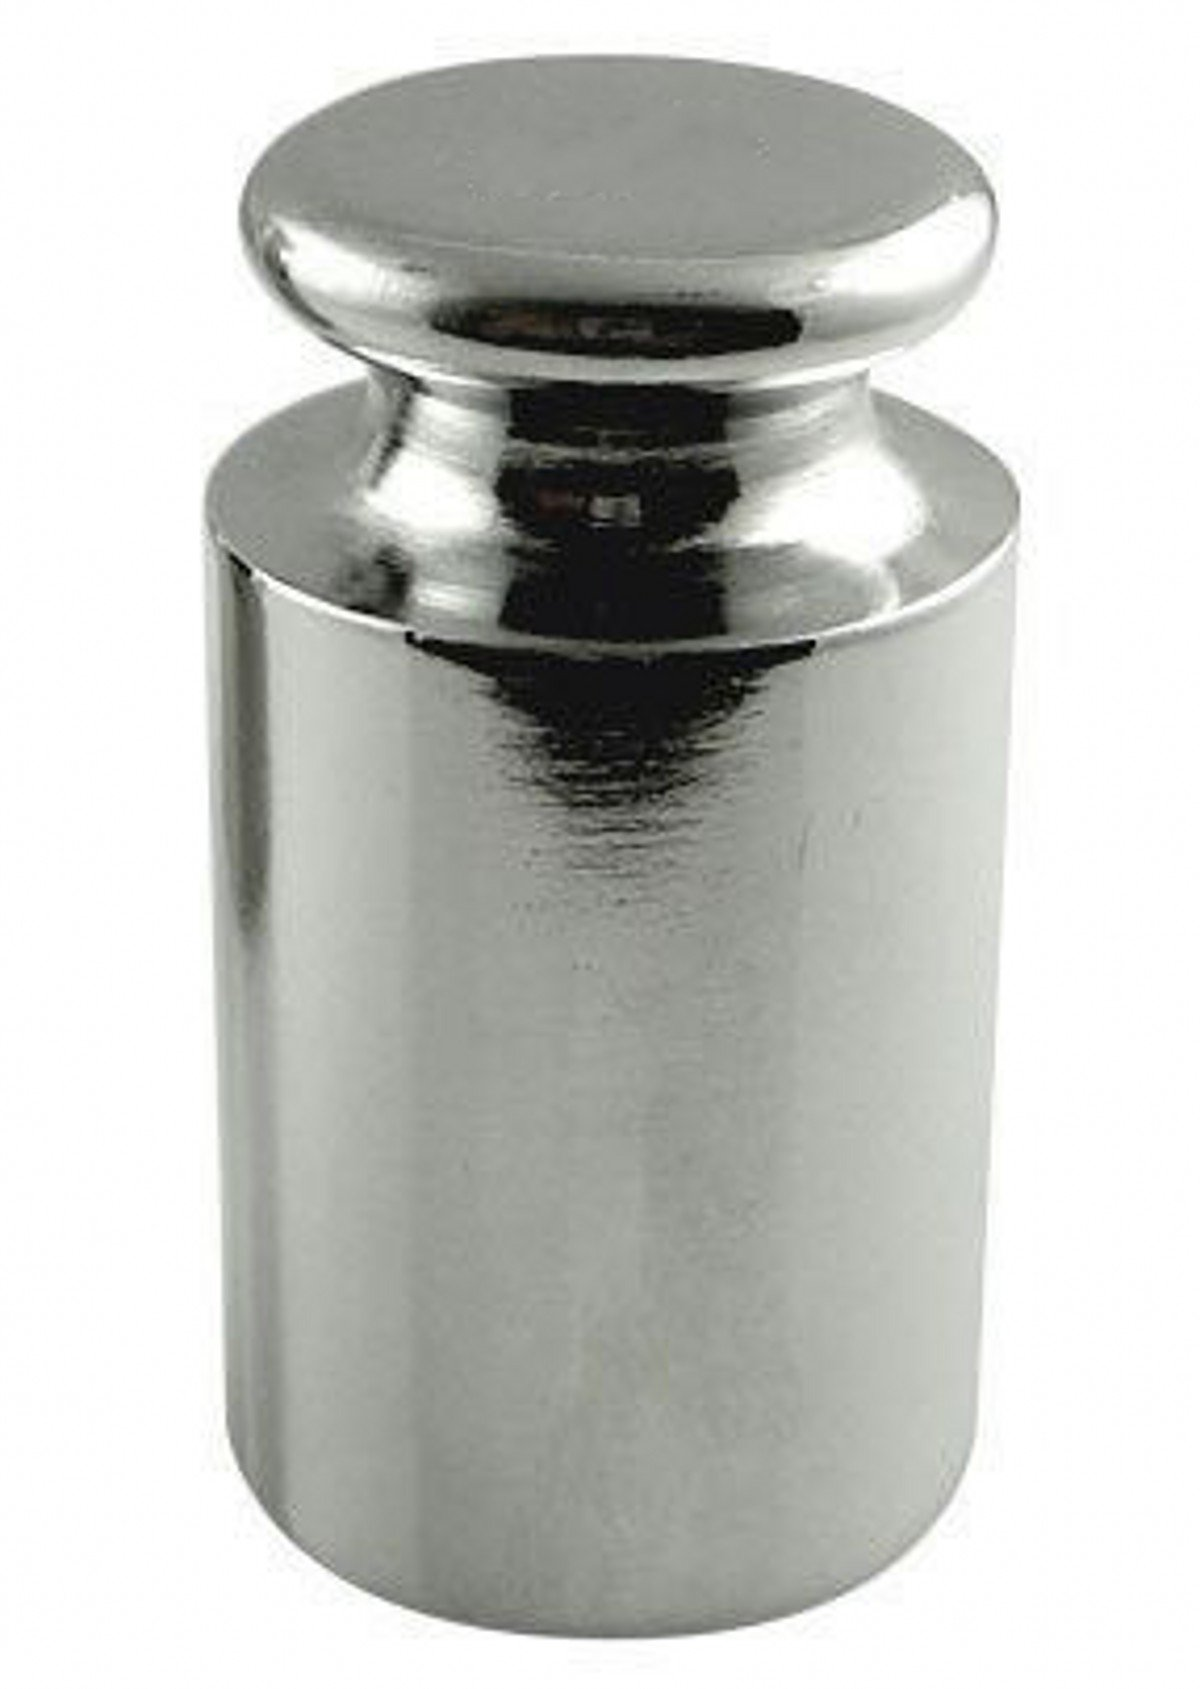 1000g Gram Chrome Precision Chrome Calibration Scale Weight Calibrate Weigh by Neutral